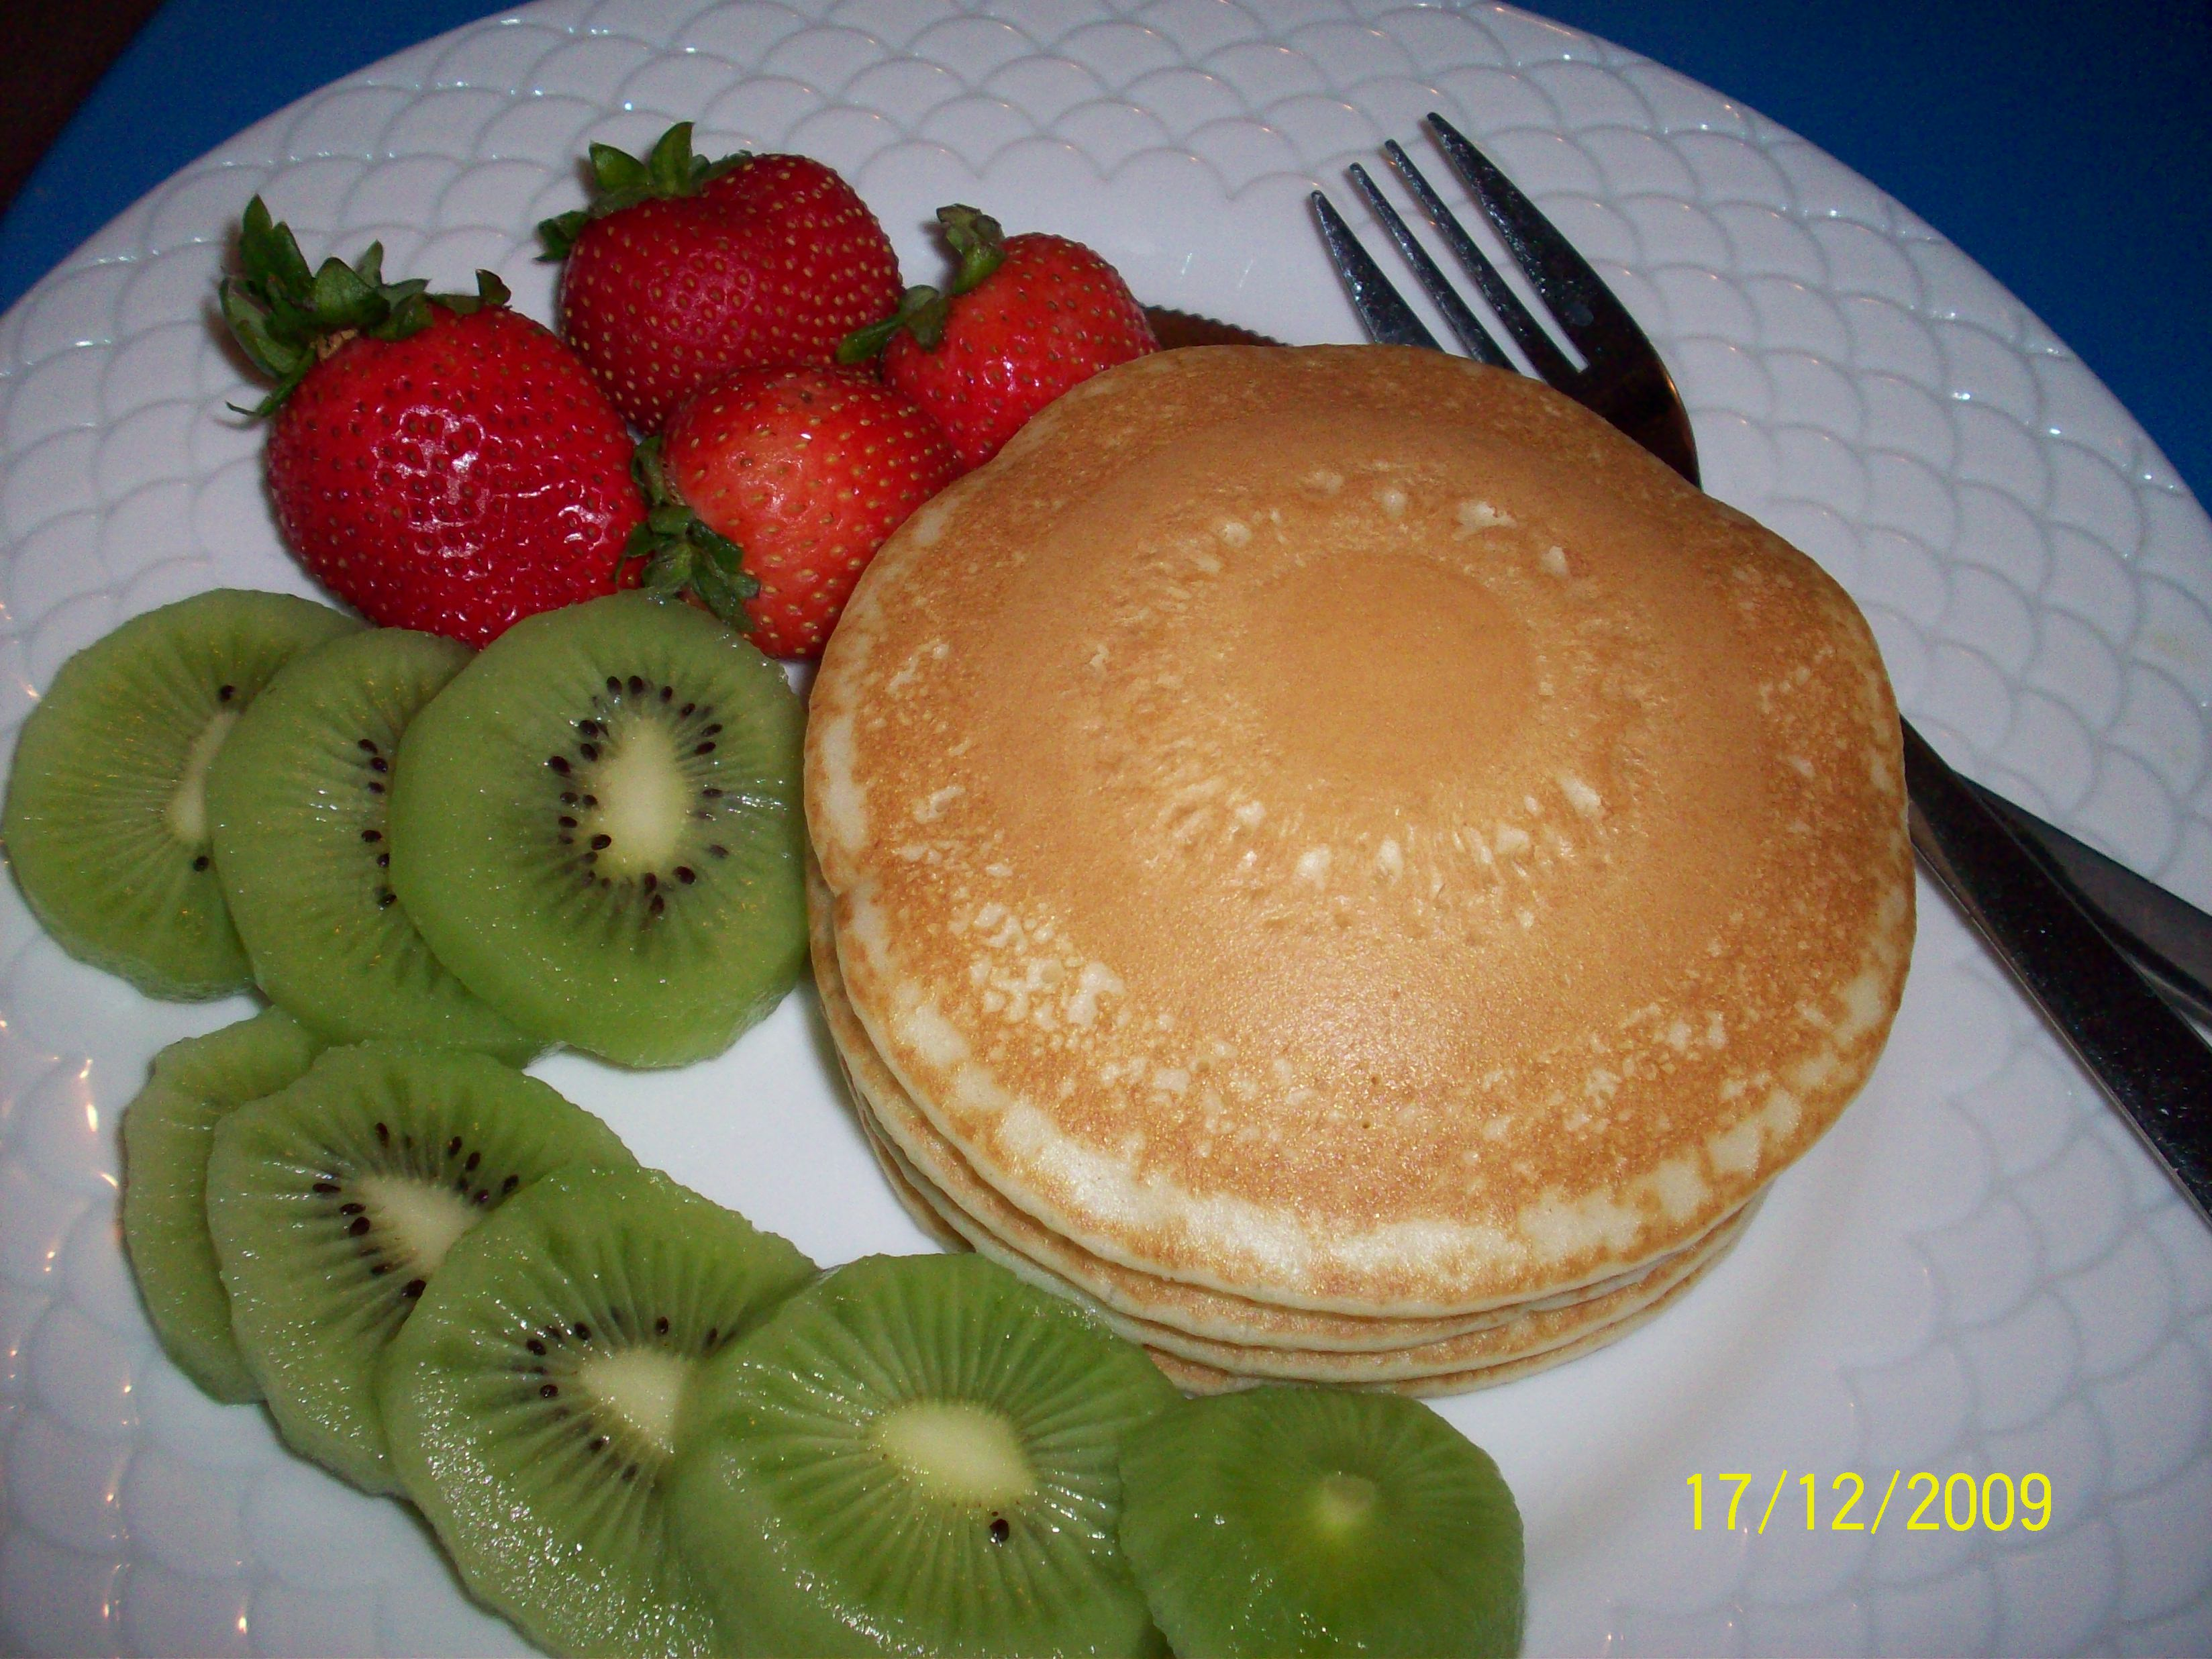 cutie • 2009-12-17 • Pancakes, Strawberries and Kiwi